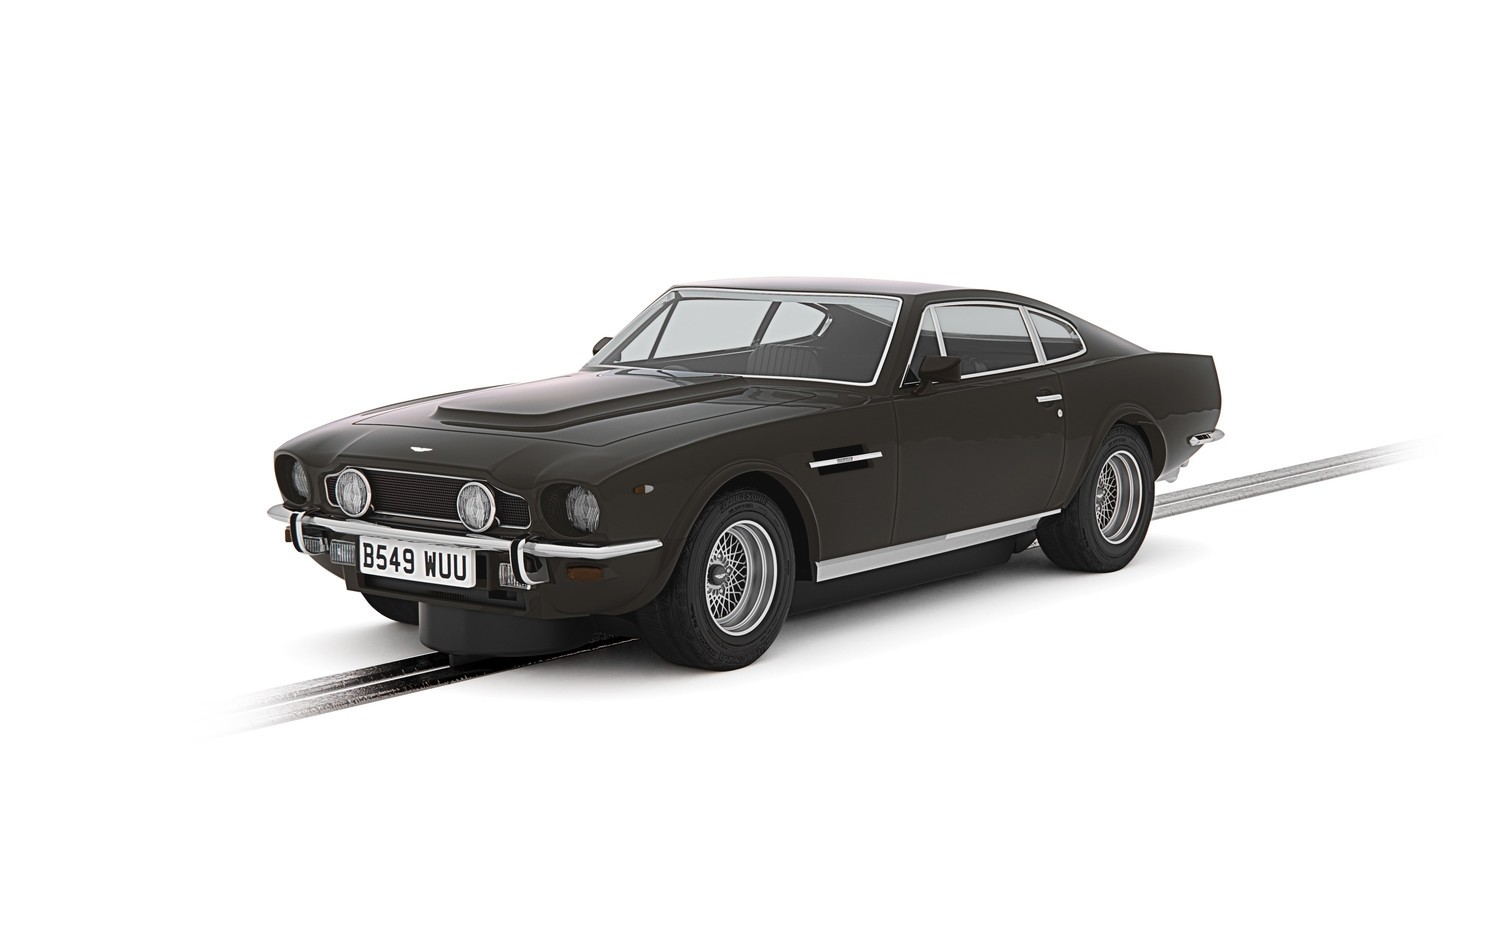 C4203 Scalextric James Bond Aston Martin V8 'No Time To Die'